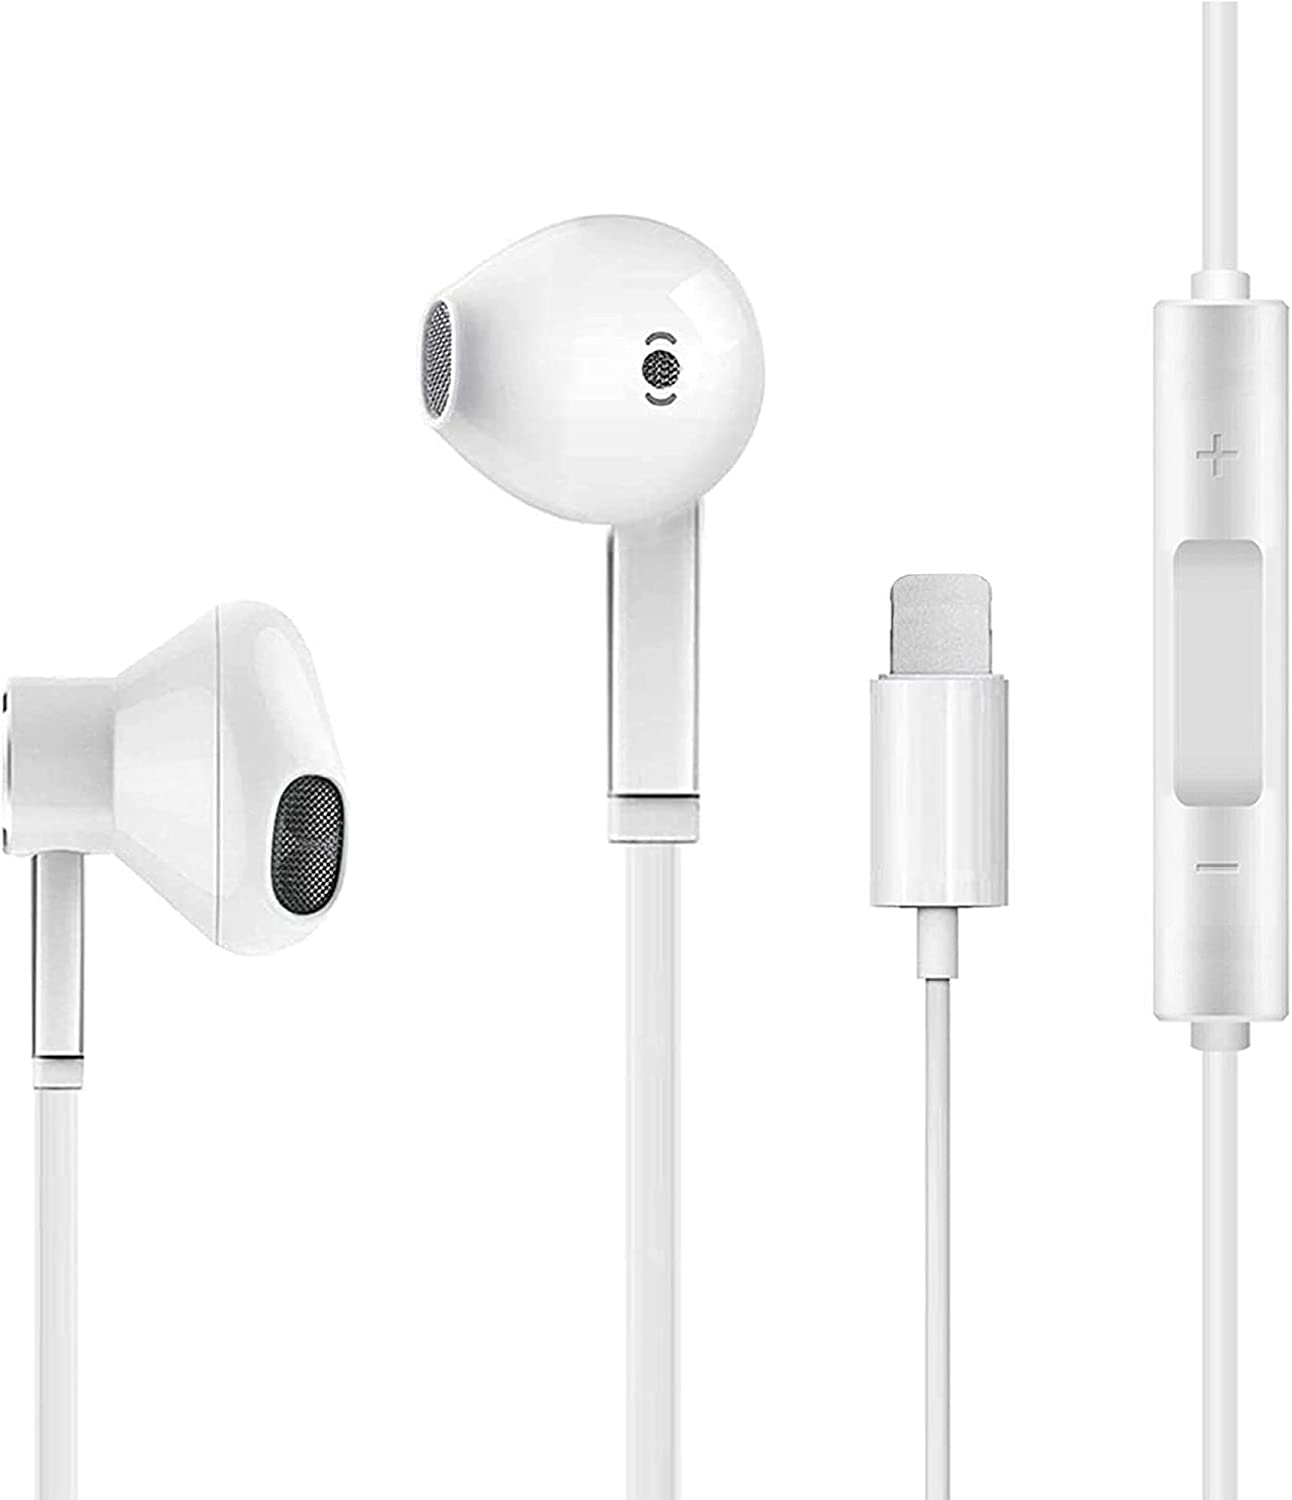 Earbuds Earphones Wired Stereo Sound Headphones [Apple MFi Certified] for iPhone with Microphone and Volume Control,Active Noise Cancellation Compatible with iPhone 11Pro/12/7/8plus/X/iPod/xs